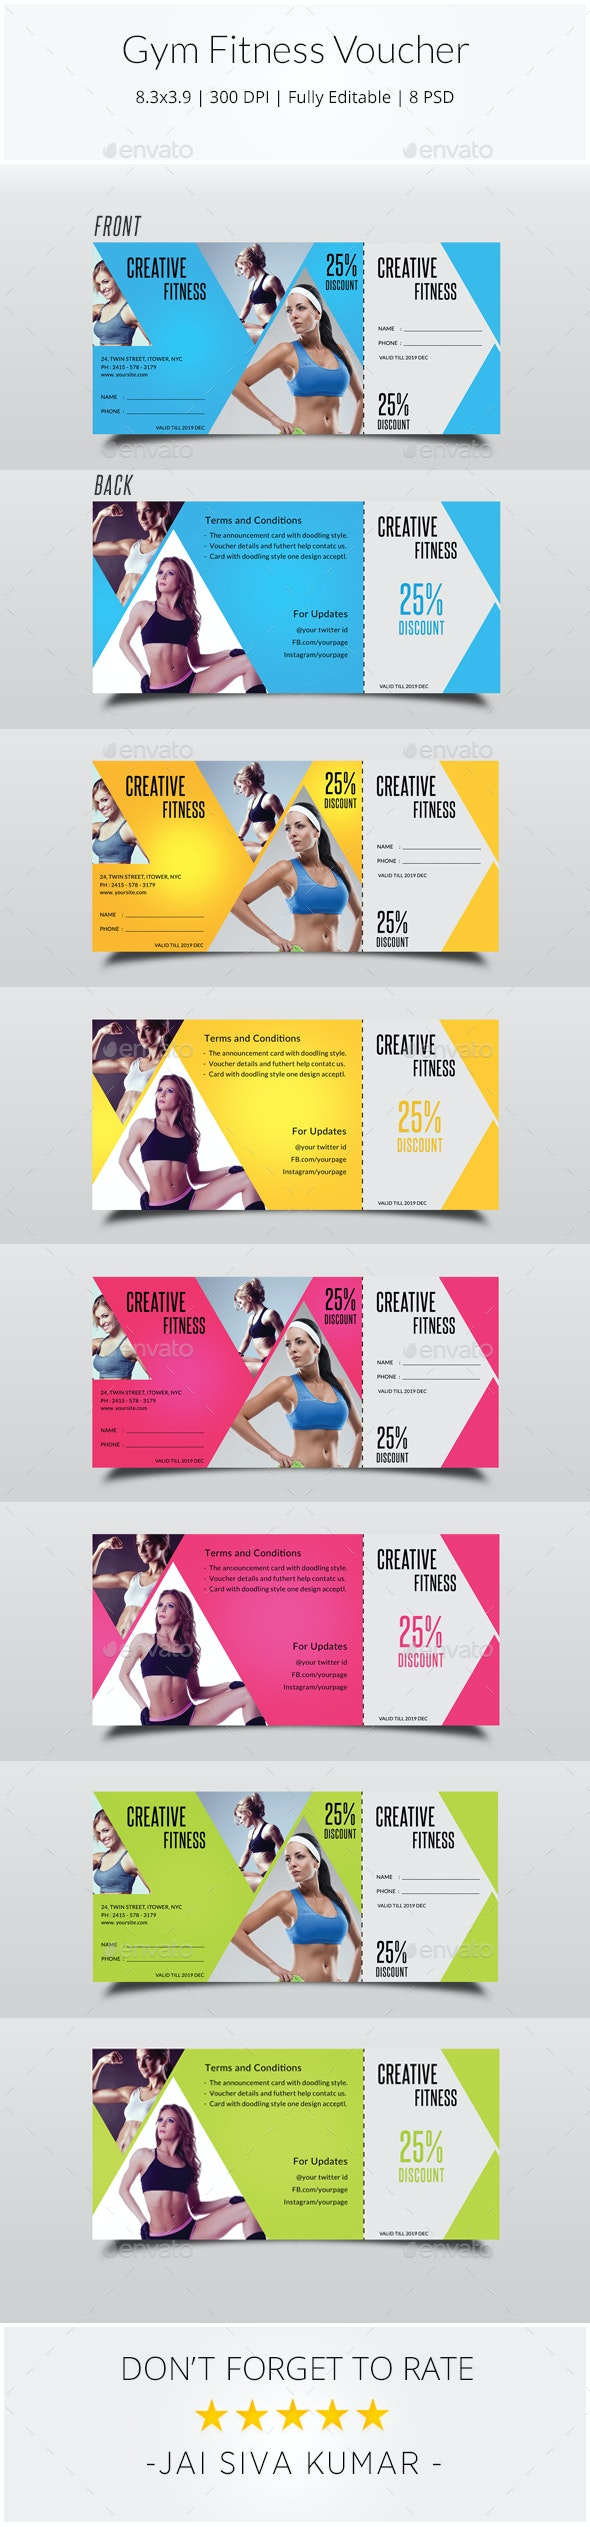 Gym Fitness Voucher - Loyalty Cards Cards & Invites